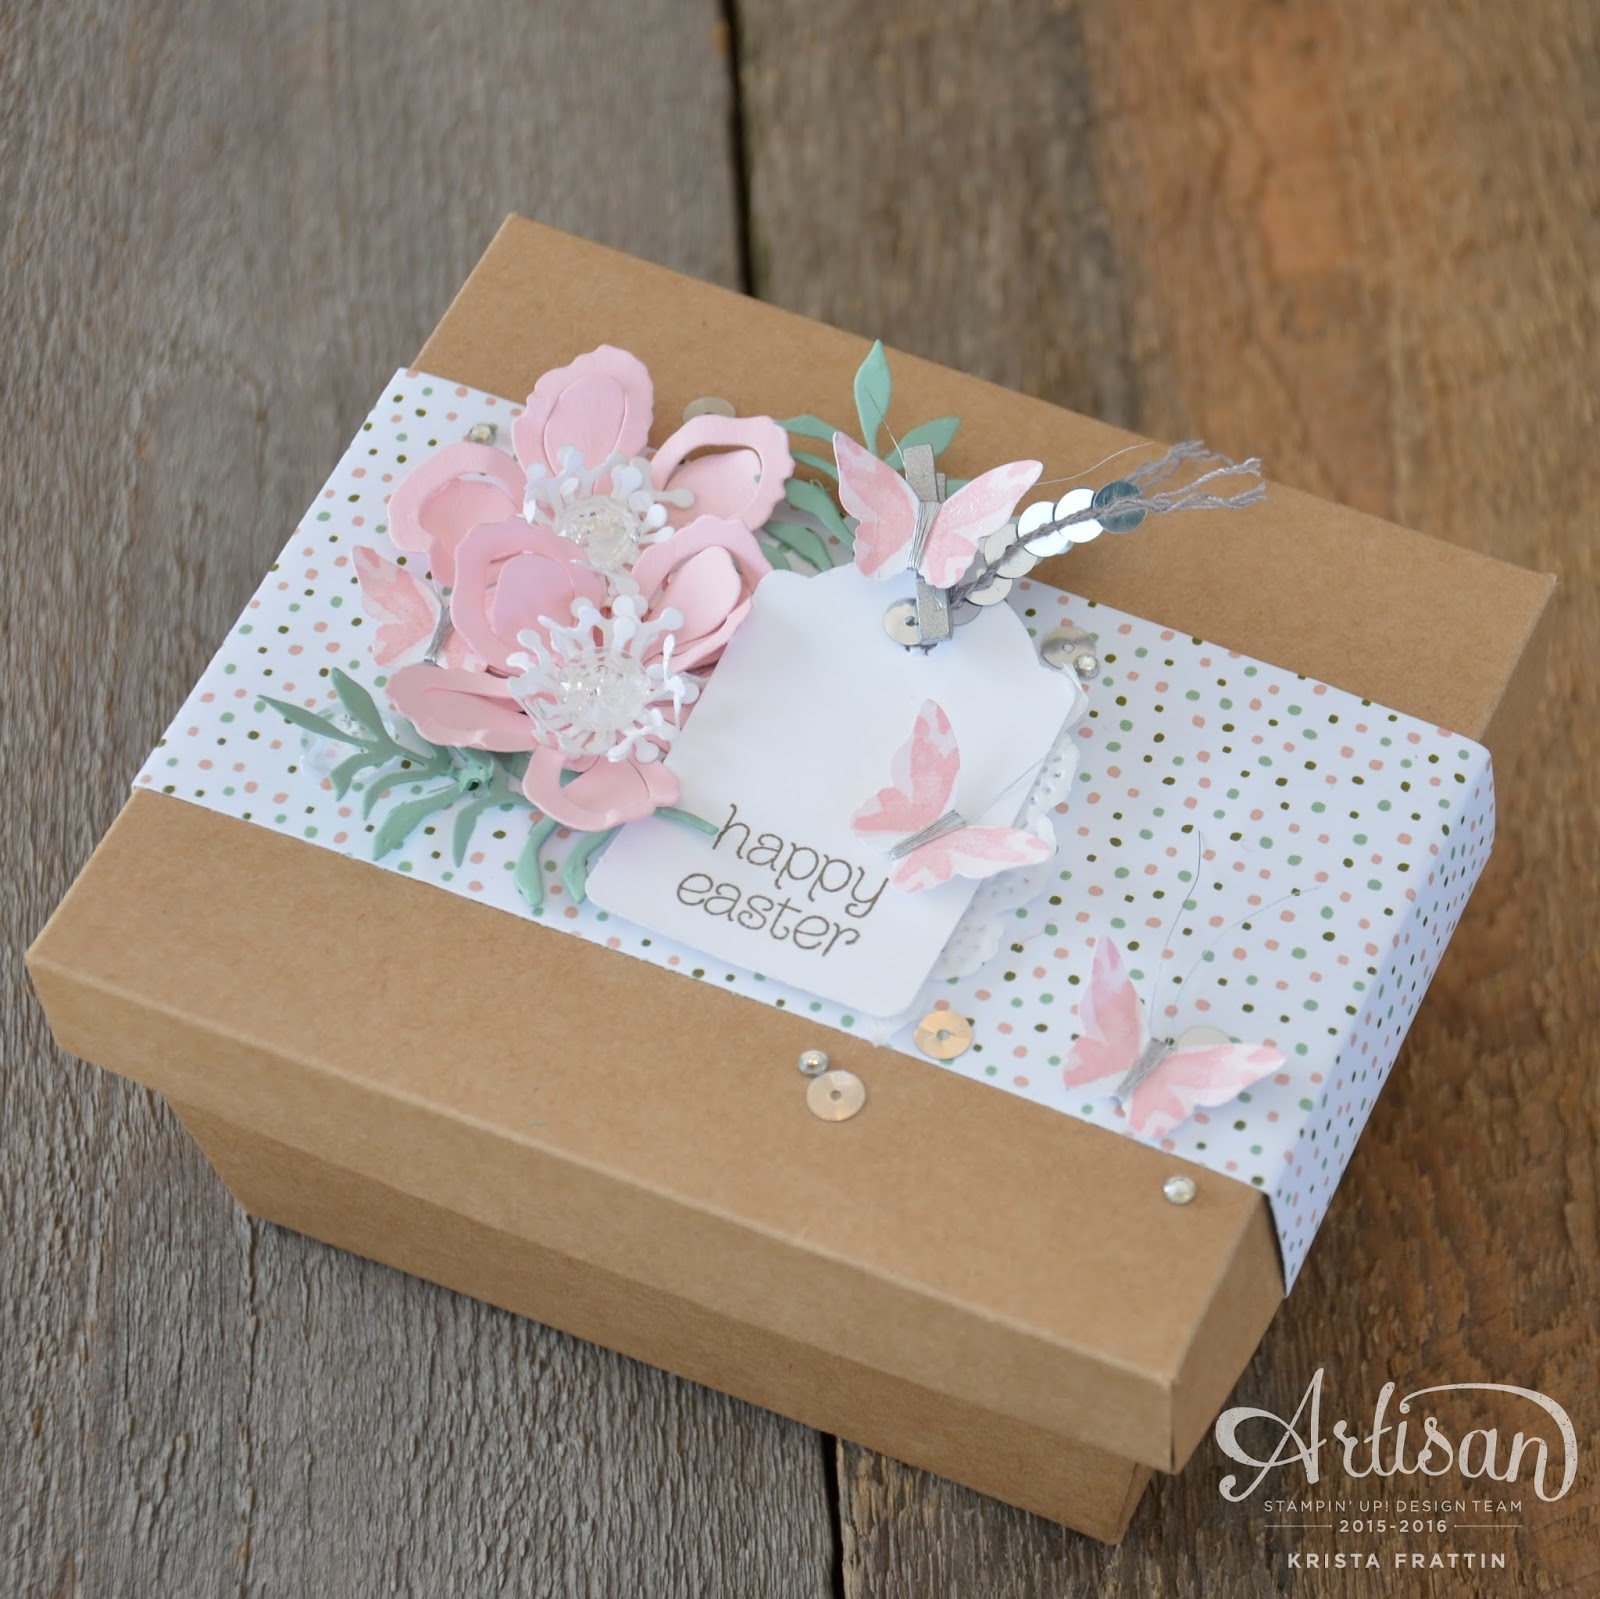 Stampin dolce easter gift box fancy friday blog hop easter gift box fancy friday blog hop negle Image collections